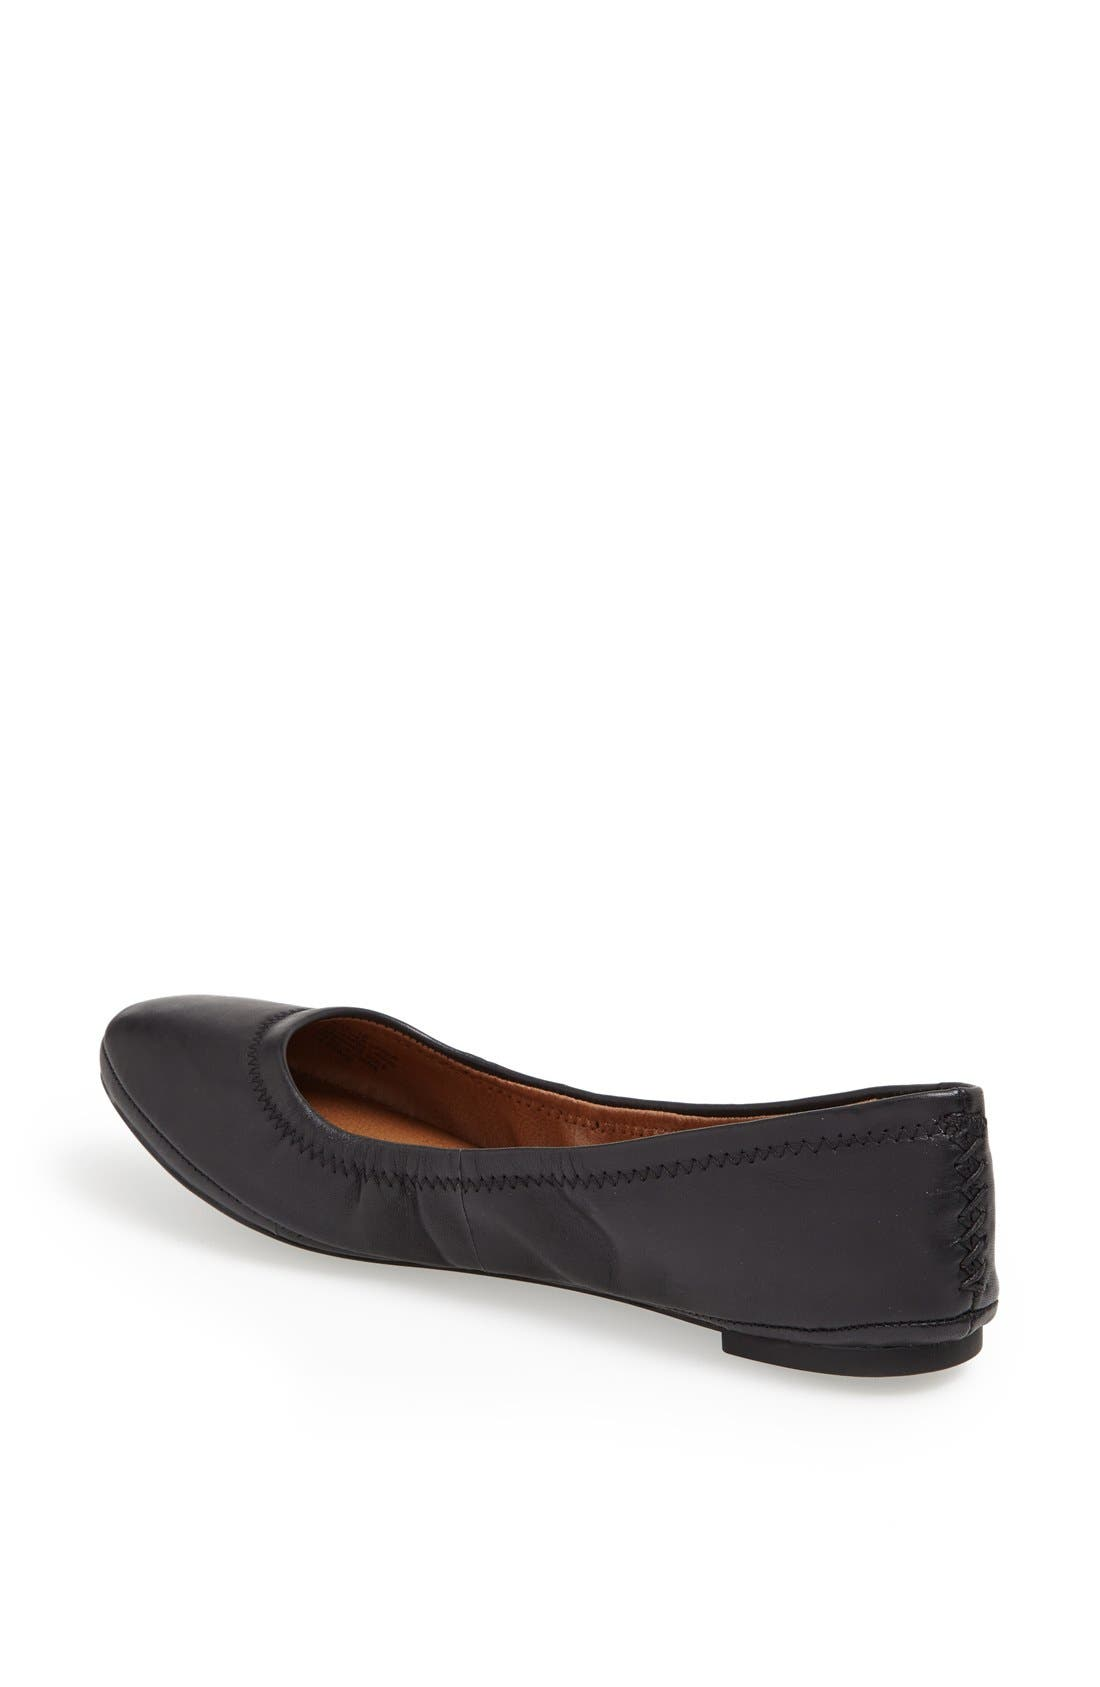 LUCKY BRAND,                             'Emmie' Flat,                             Alternate thumbnail 2, color,                             001